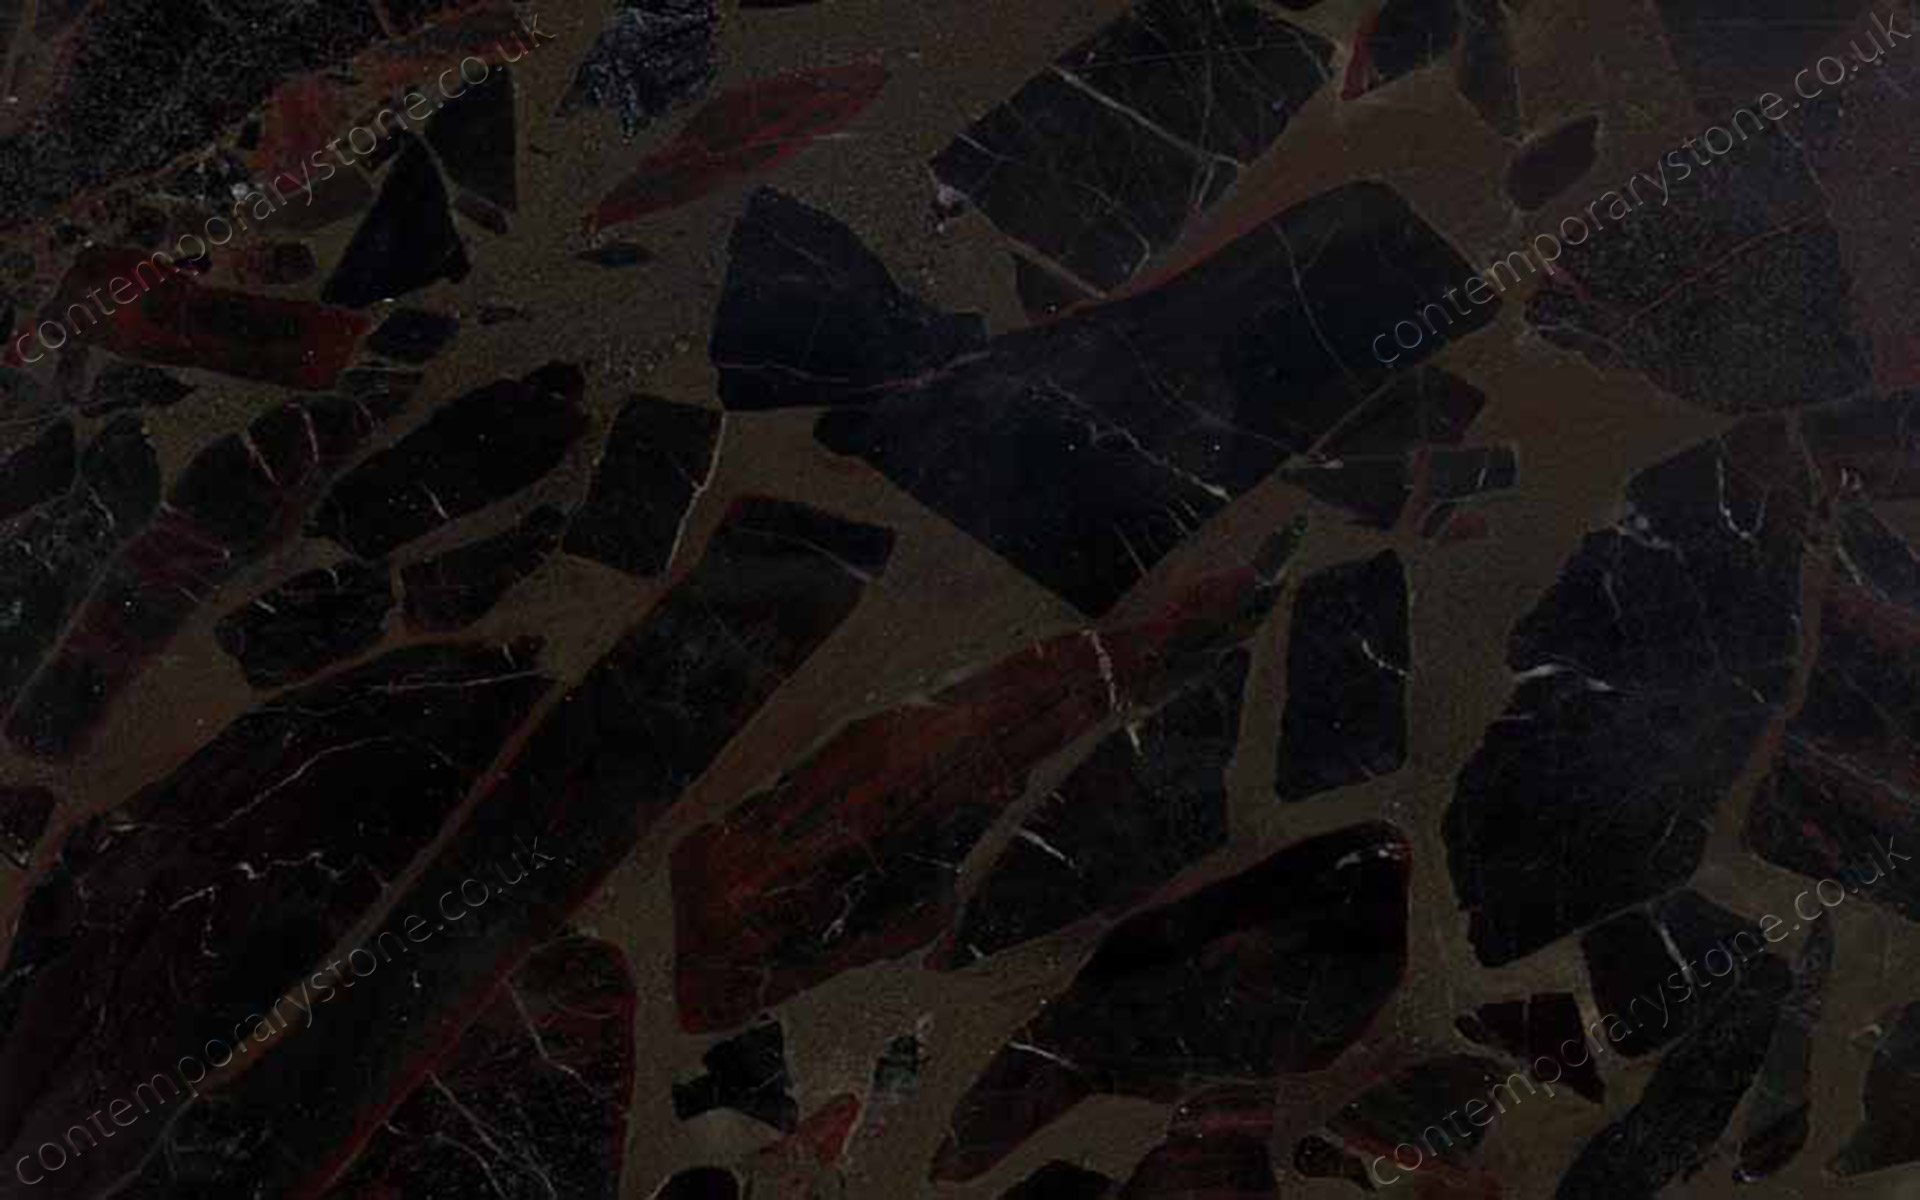 Black Beauty granite close-up